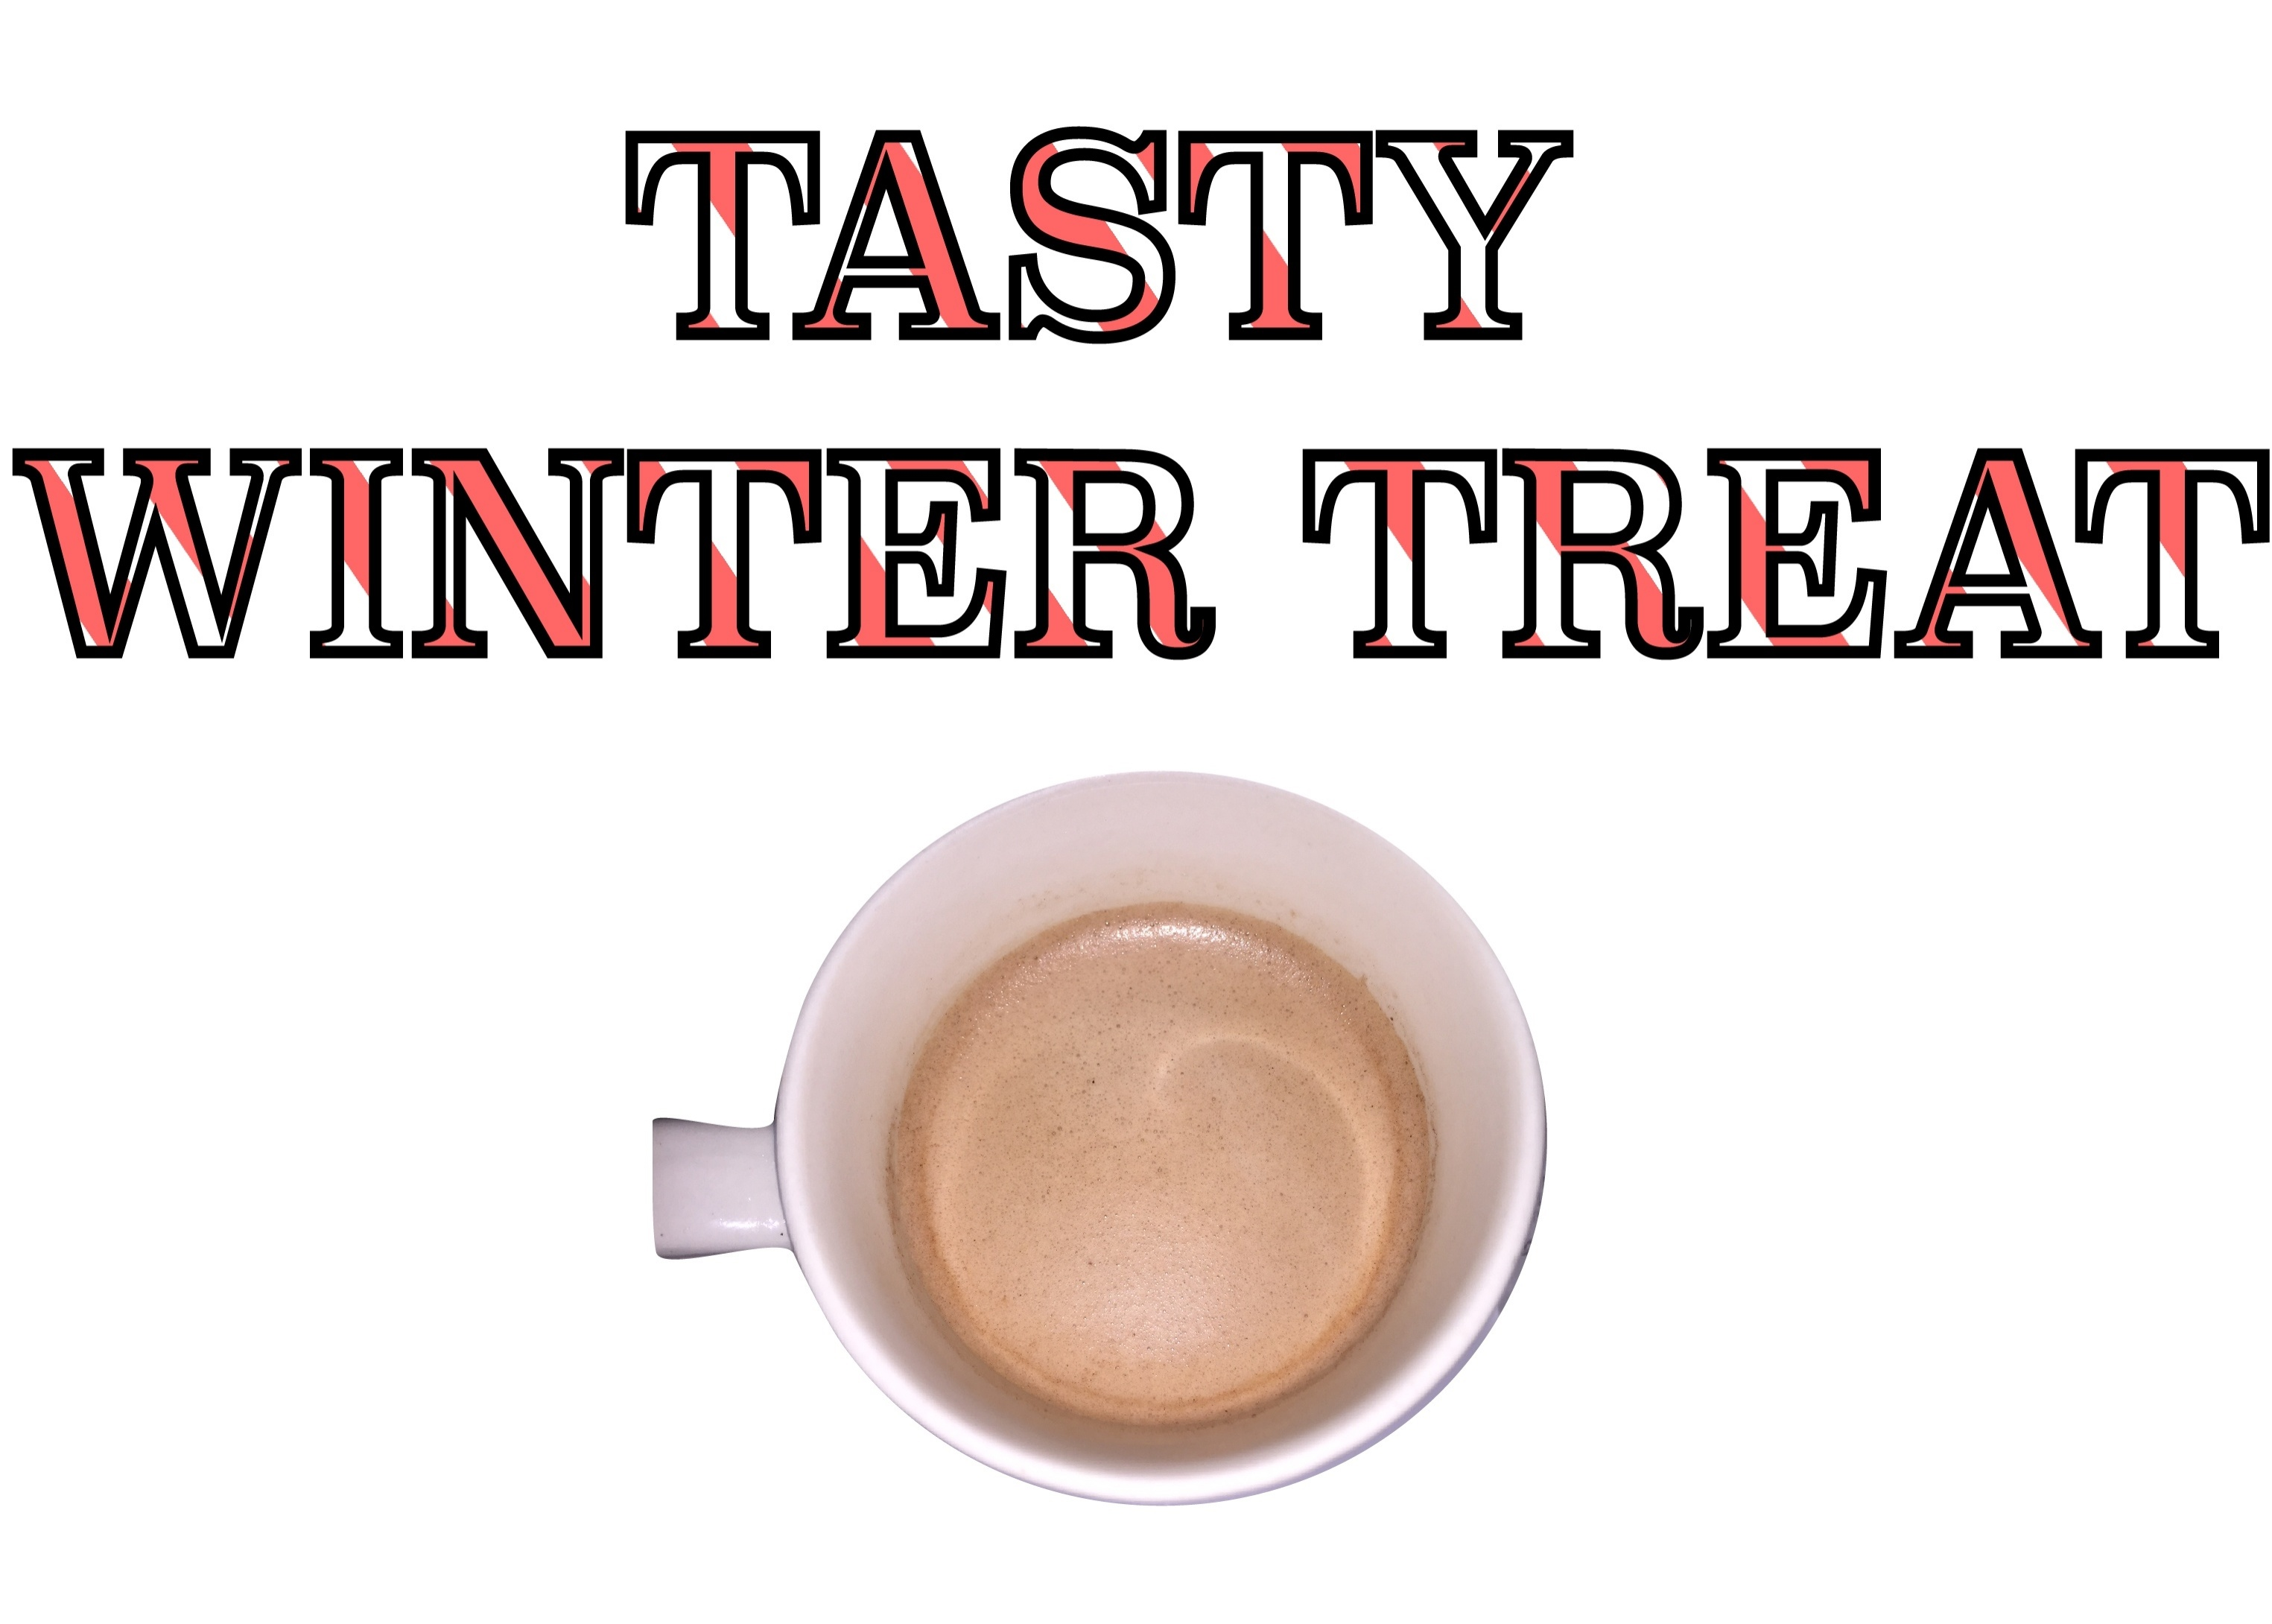 Tasty_Winter_Treat_2-991118-edited.jpg